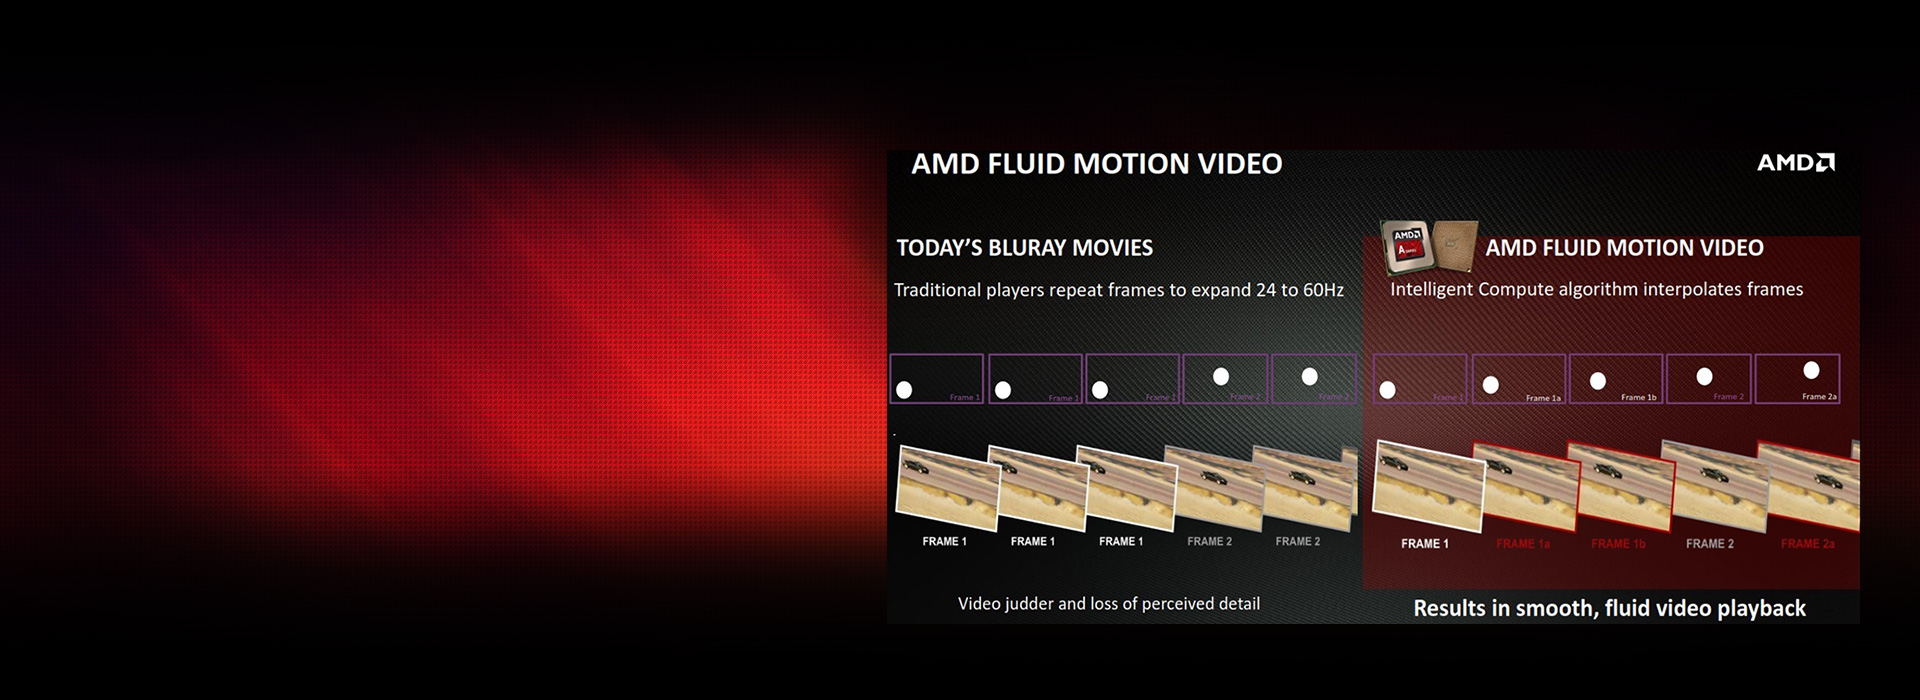 A comparison of frames between Blu-ray movies and AMD Fluid Motion Video, the text reads: Today's Bluray movies use traditional players that repeat framers to expand 24 to 60 hertz. This produces video judder and loss of perceived detail. AMD Fluid Motion video uses an intelligent compute algorithm that interpolates frames. This results in smooth, fluid video playback.